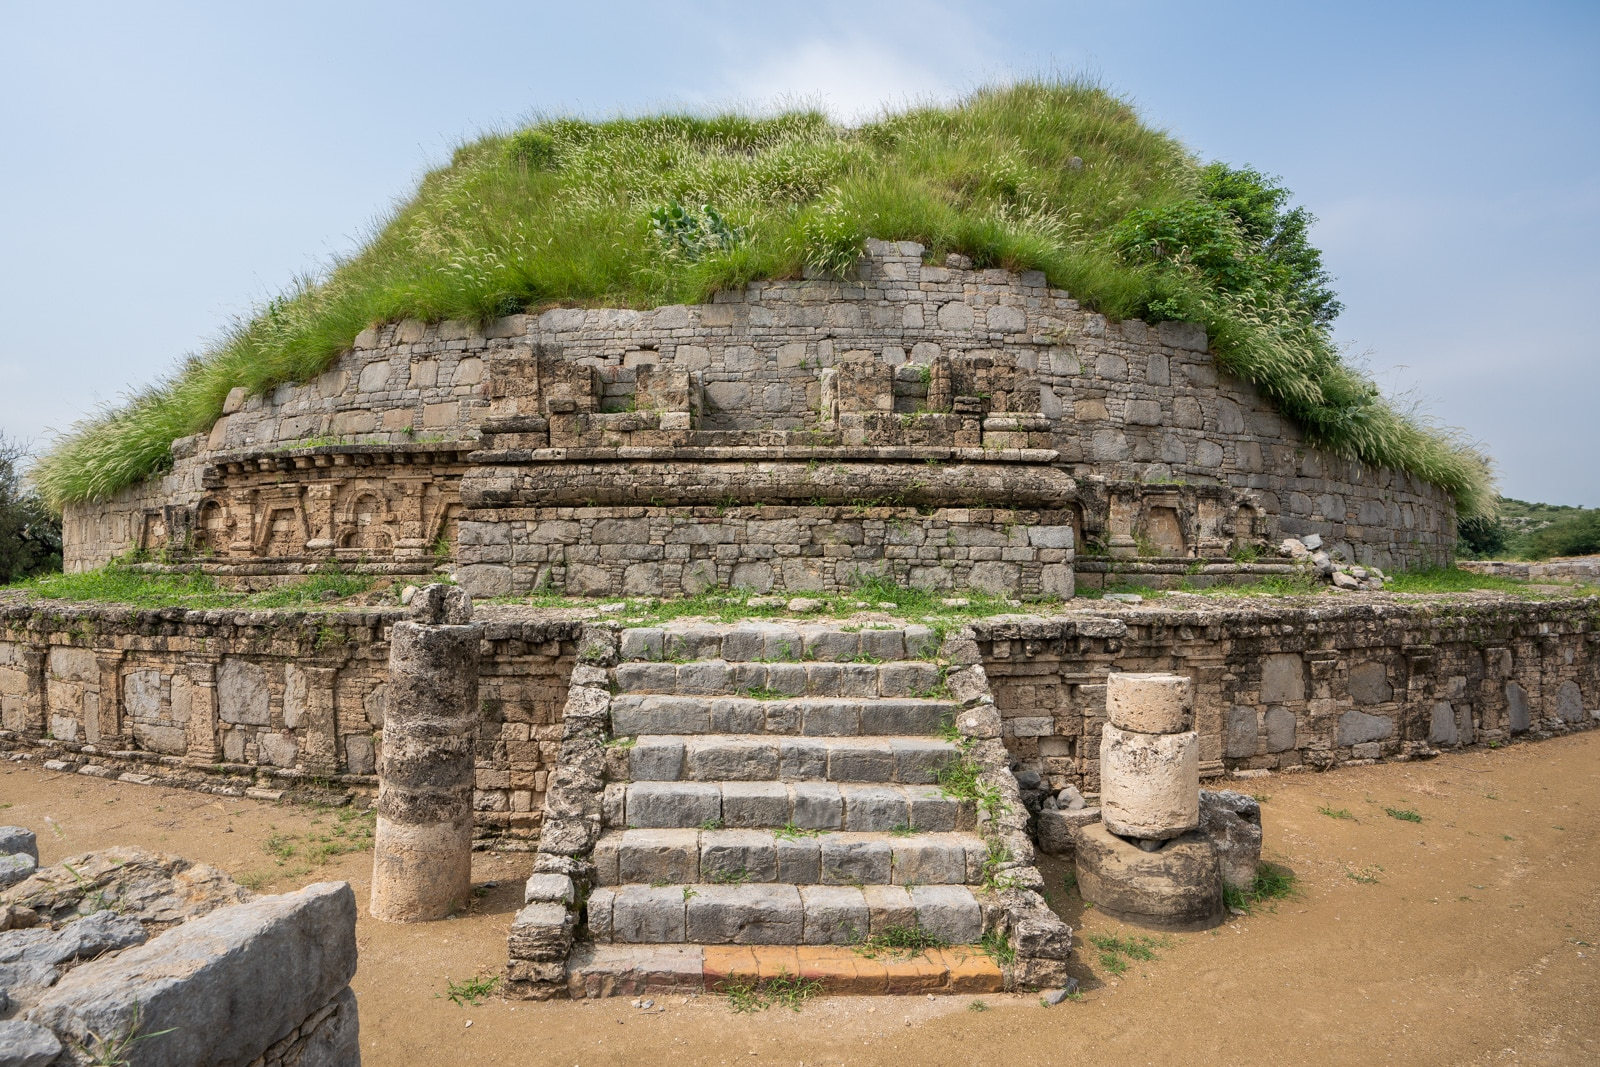 Ruins of a Buddhist stupa at Taxila near Islamabad, Pakistan